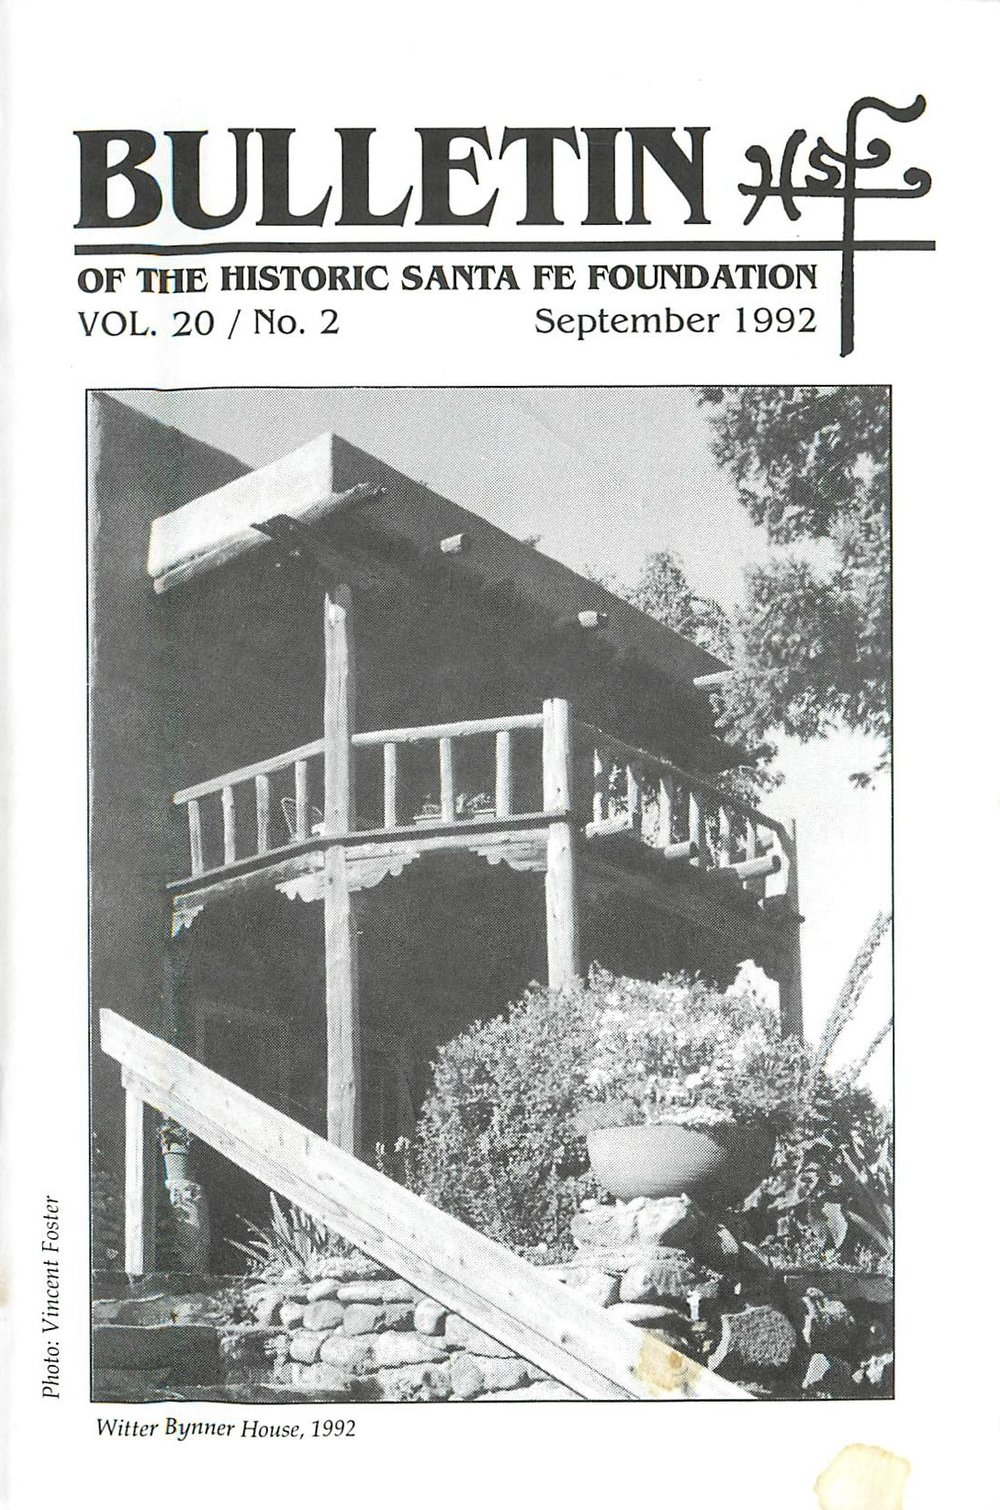 1992 HSFF Bulletin Vol.20 No.2 Cover